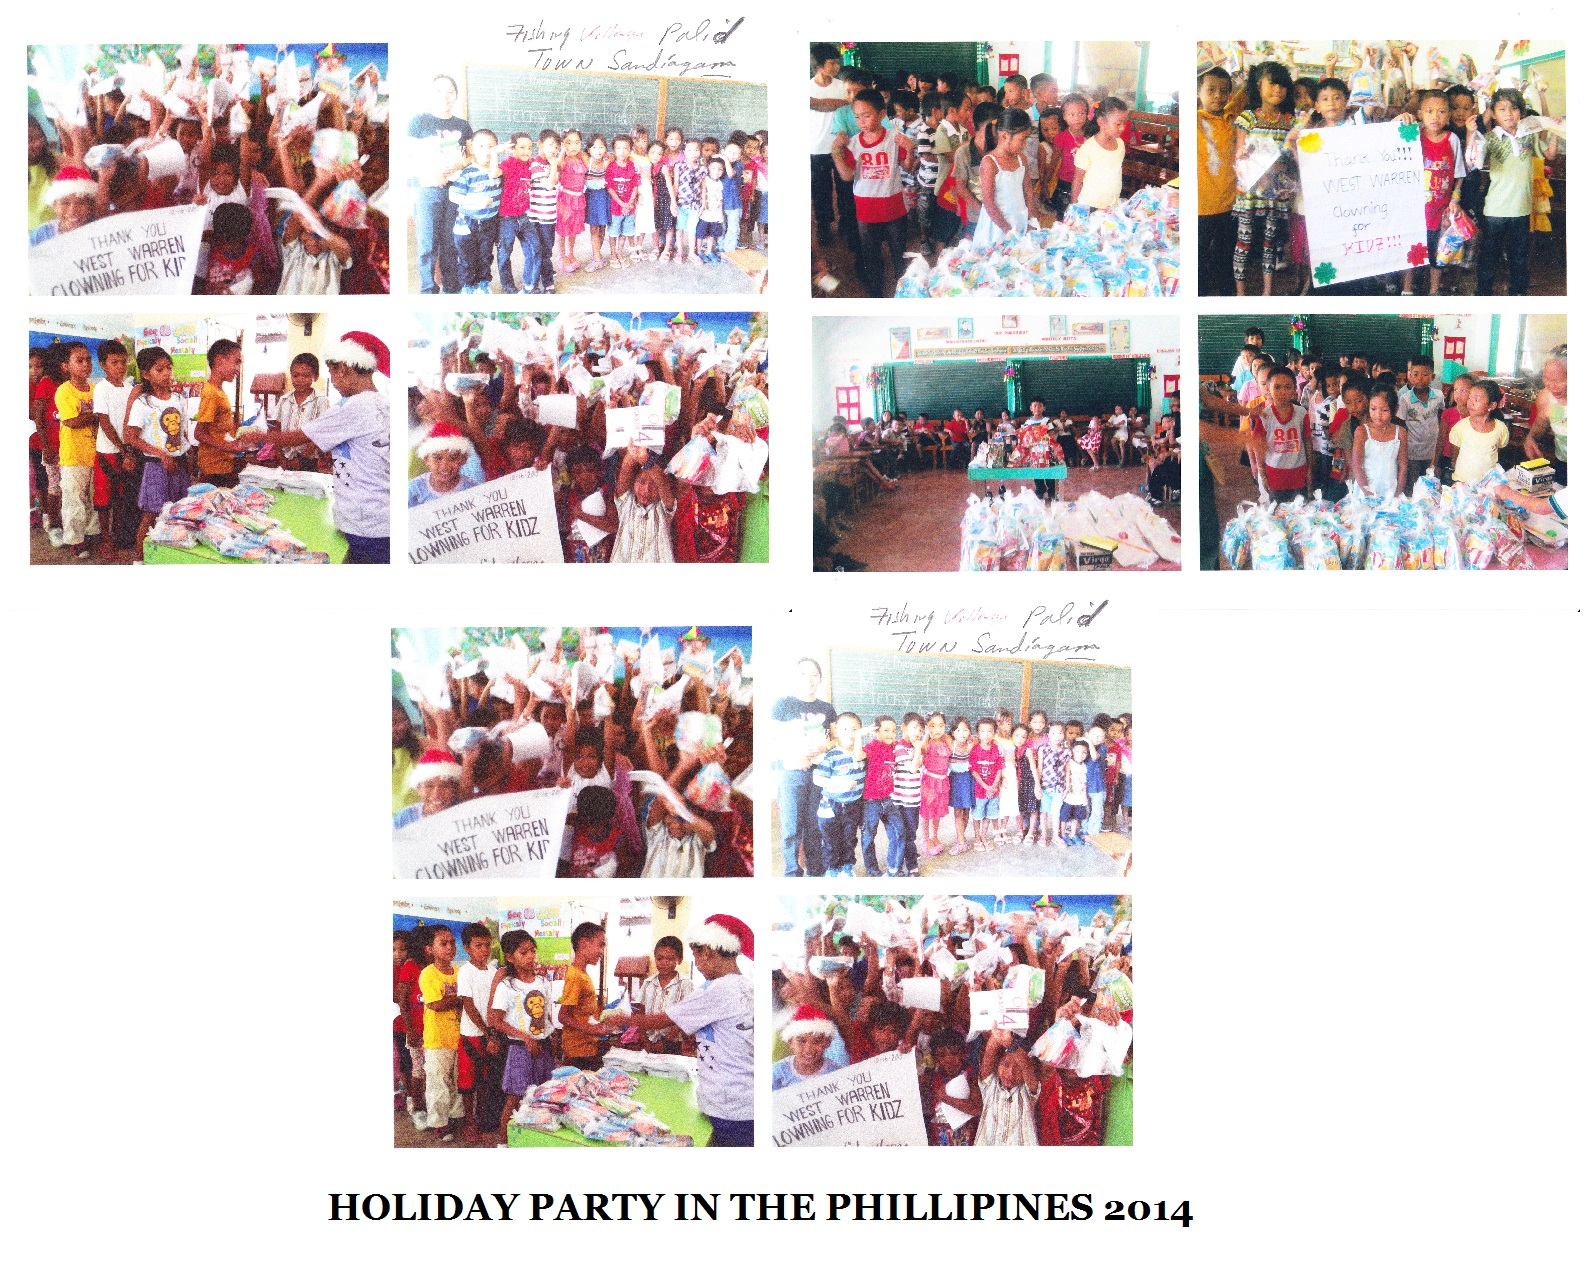 Phillipines_Holiday_Party_2014.jpg